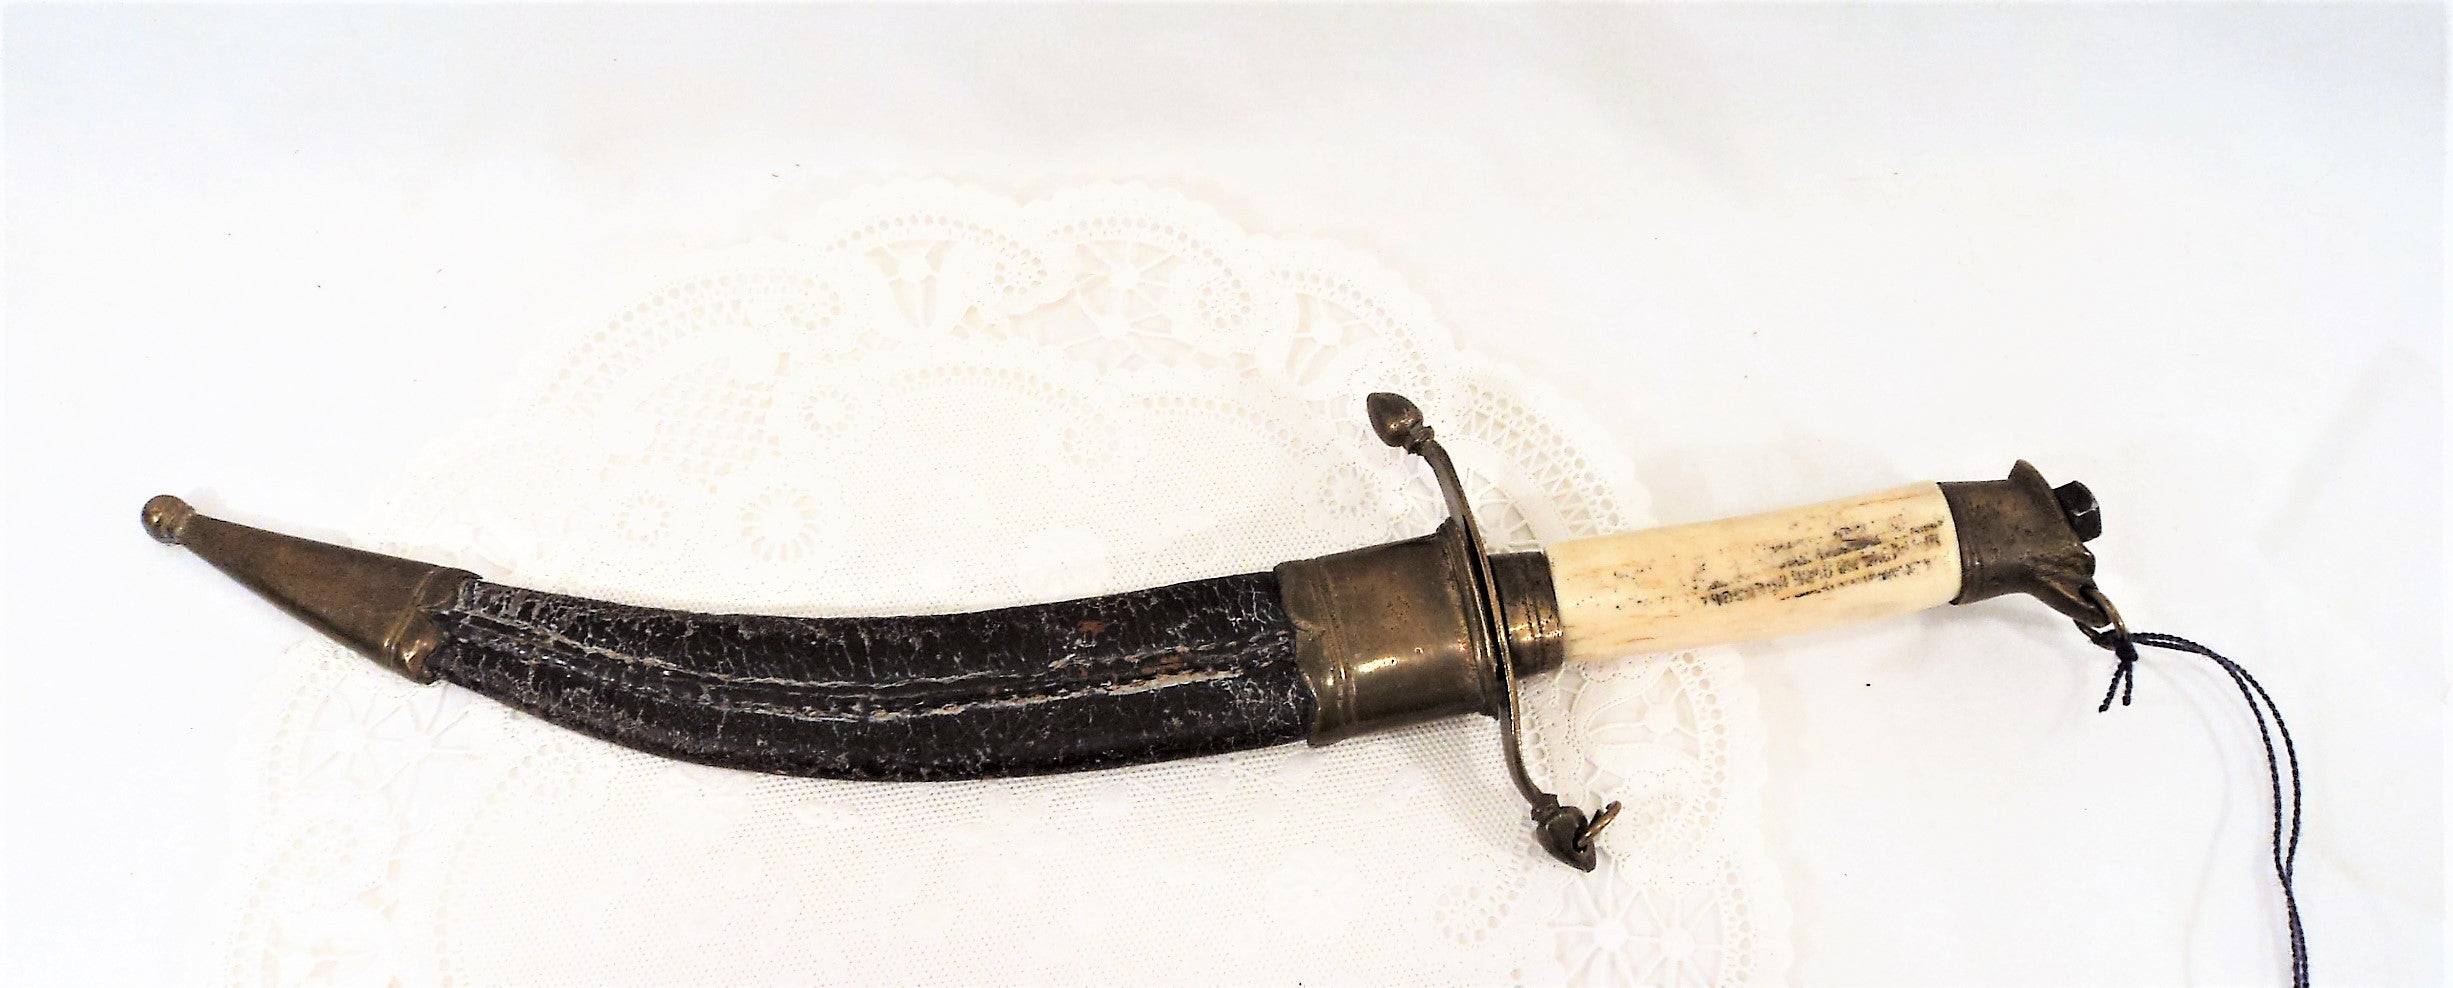 Antique Persian Dagger with Leather Sheath